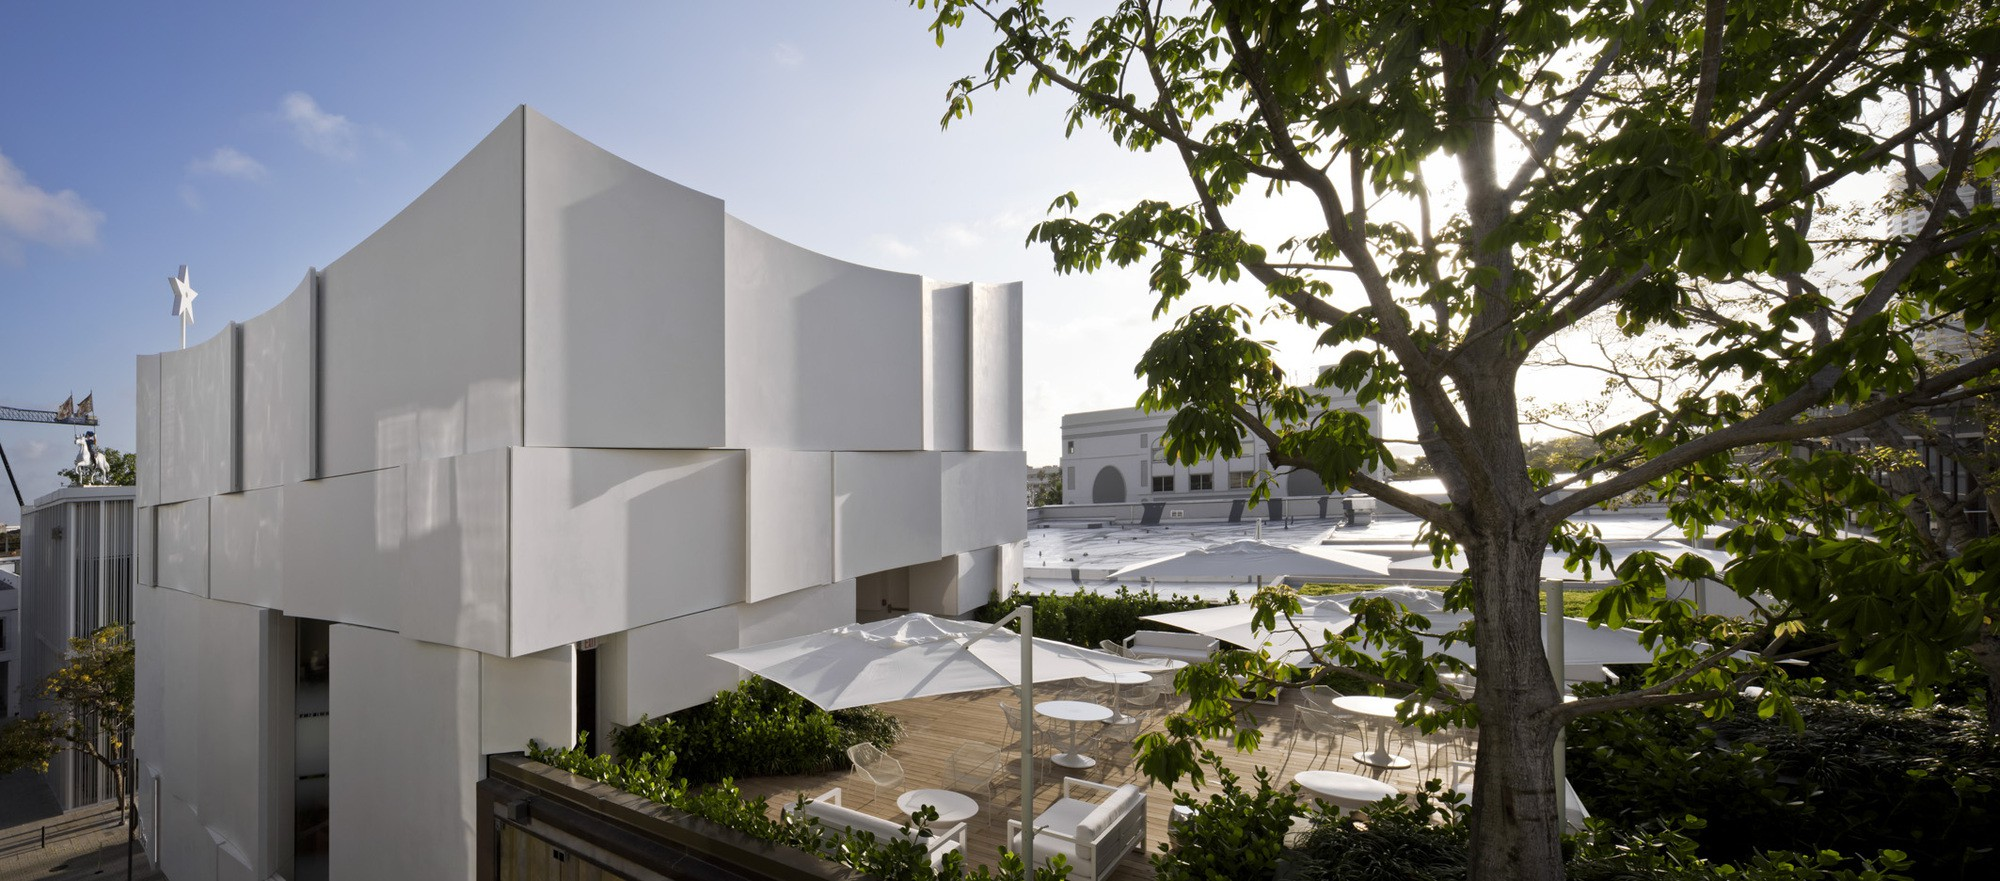 Dior Miami Facade-yesonfashion-com-12